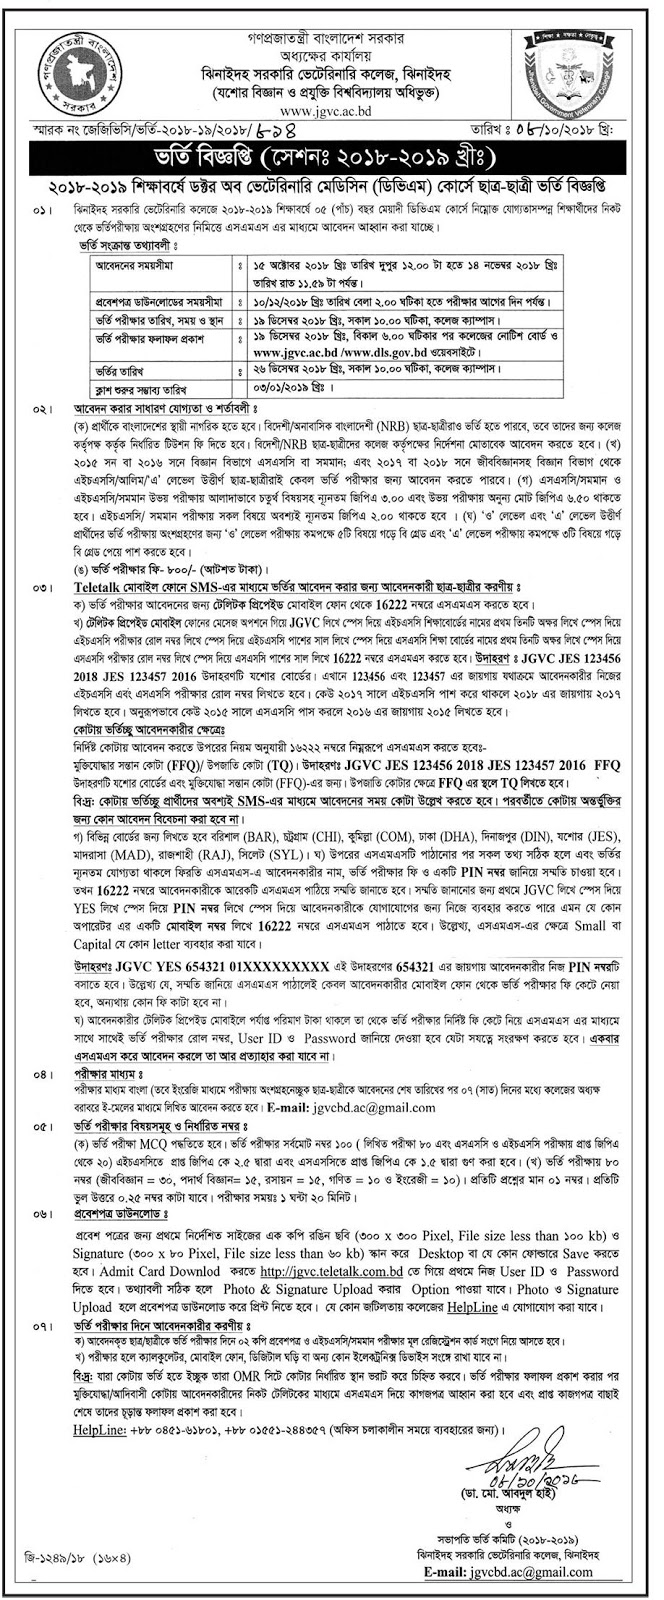 Jhenidah Government Veterinary College DVM (Doctor of Veterinary Medicine) Admission Circular 2018-2019